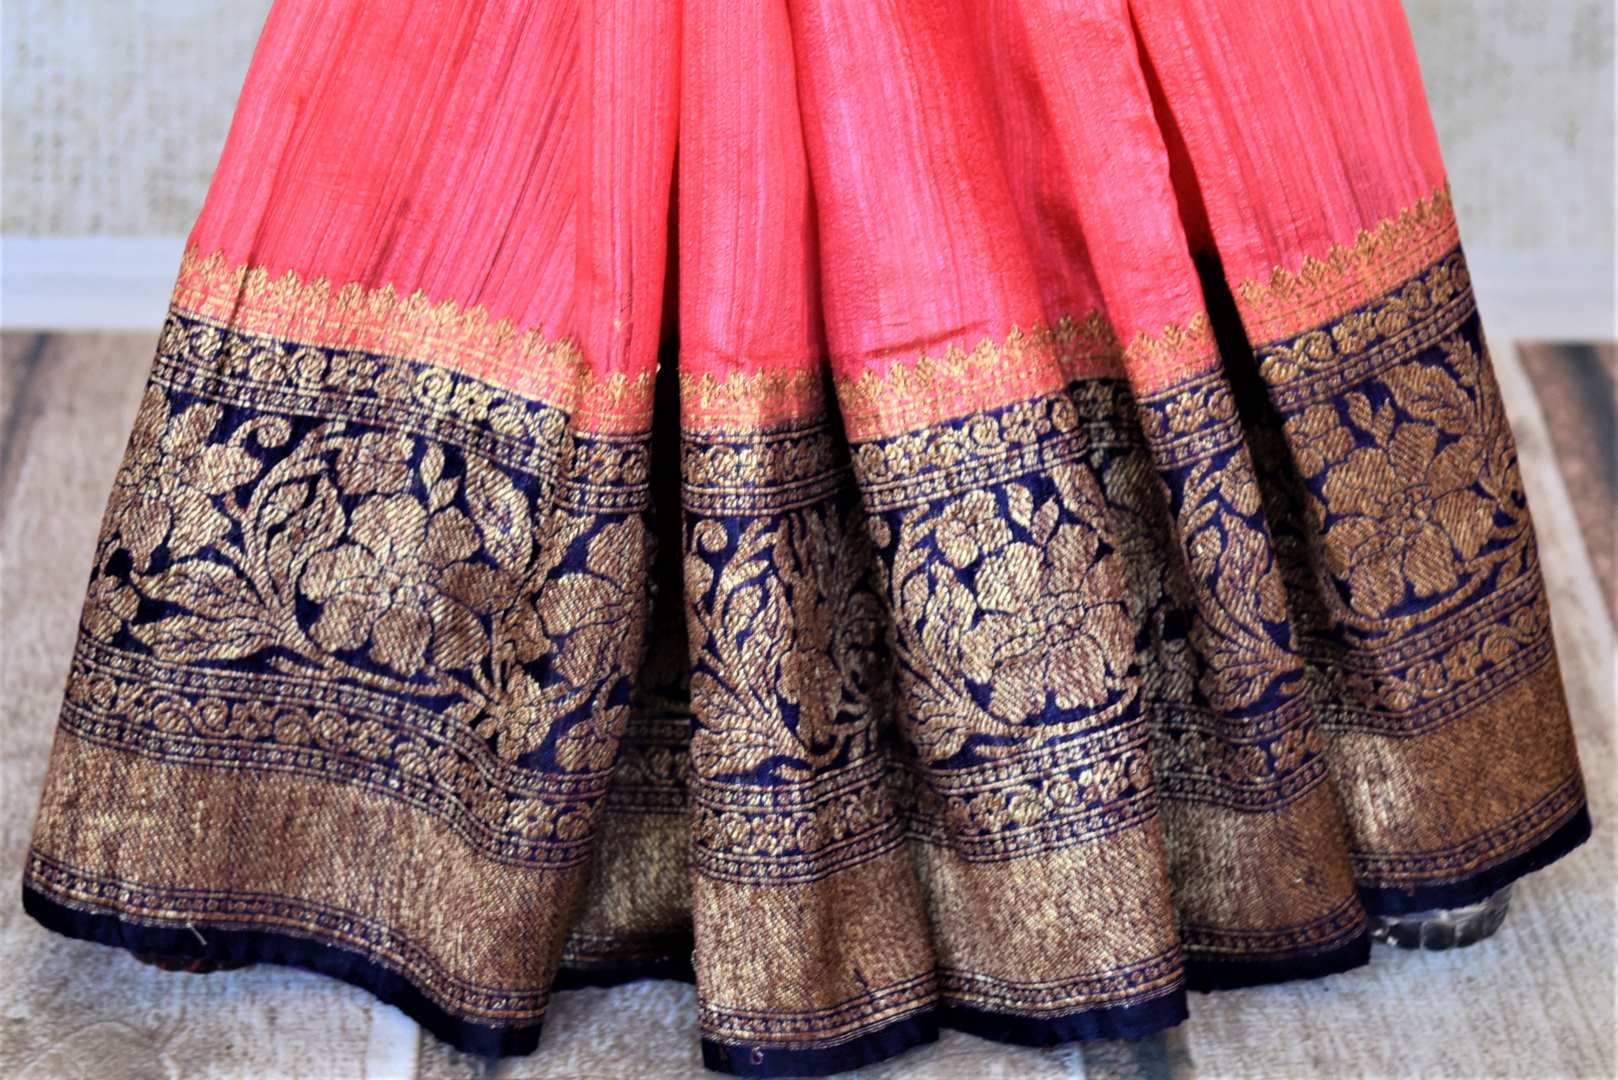 Buy bright pink tussar Benarasi saree online in USA with navy blue antique zari border. Keep your ethnic style updated with latest designer saris, handloom sarees, pure silk sarees from Pure Elegance Indian fashion store in USA.-pleats